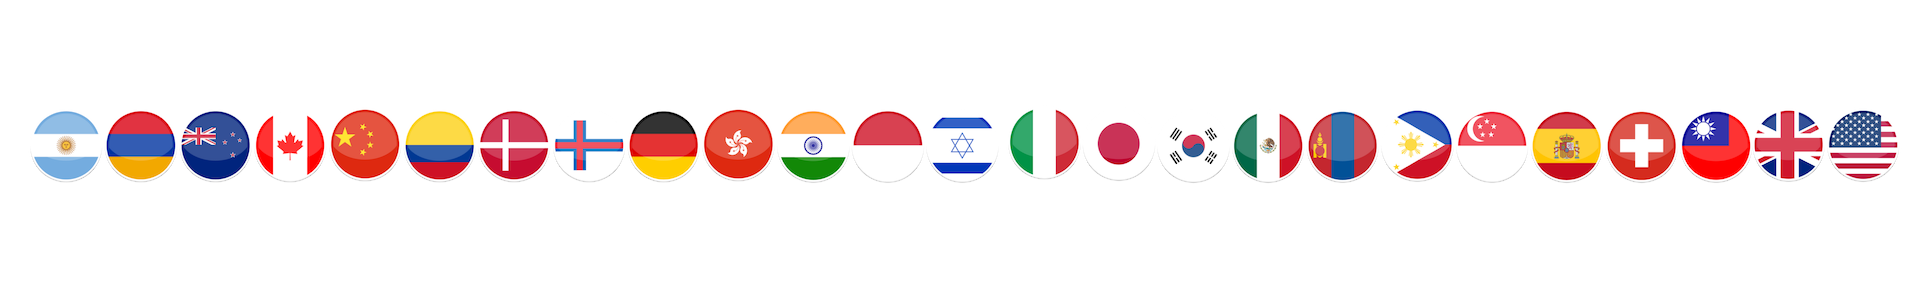 2019 WNBF World Affiliate Flags